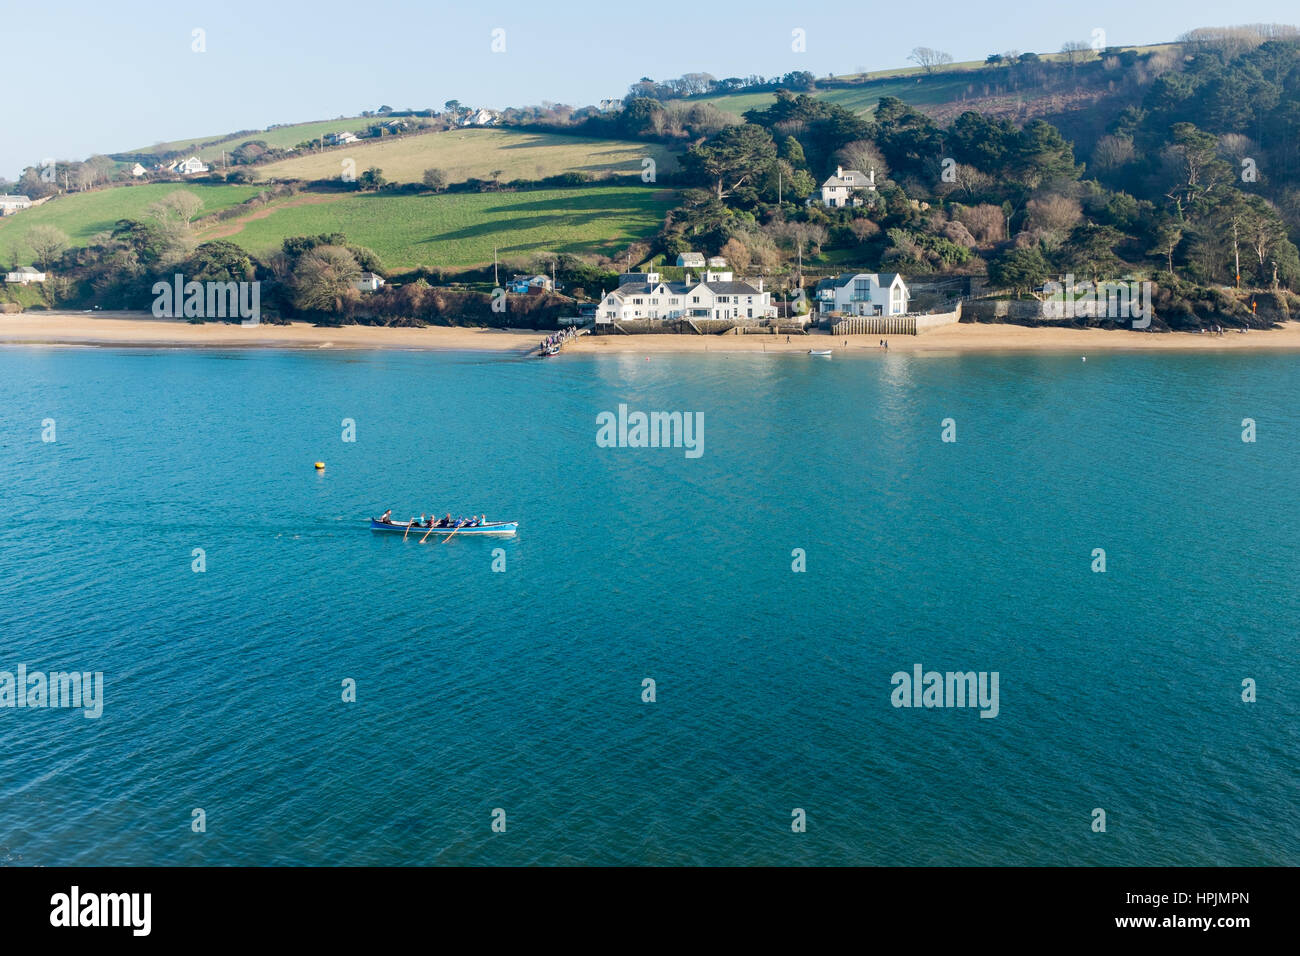 Gig boat being rowed on the Salcombe Estuary in winter - Stock Image